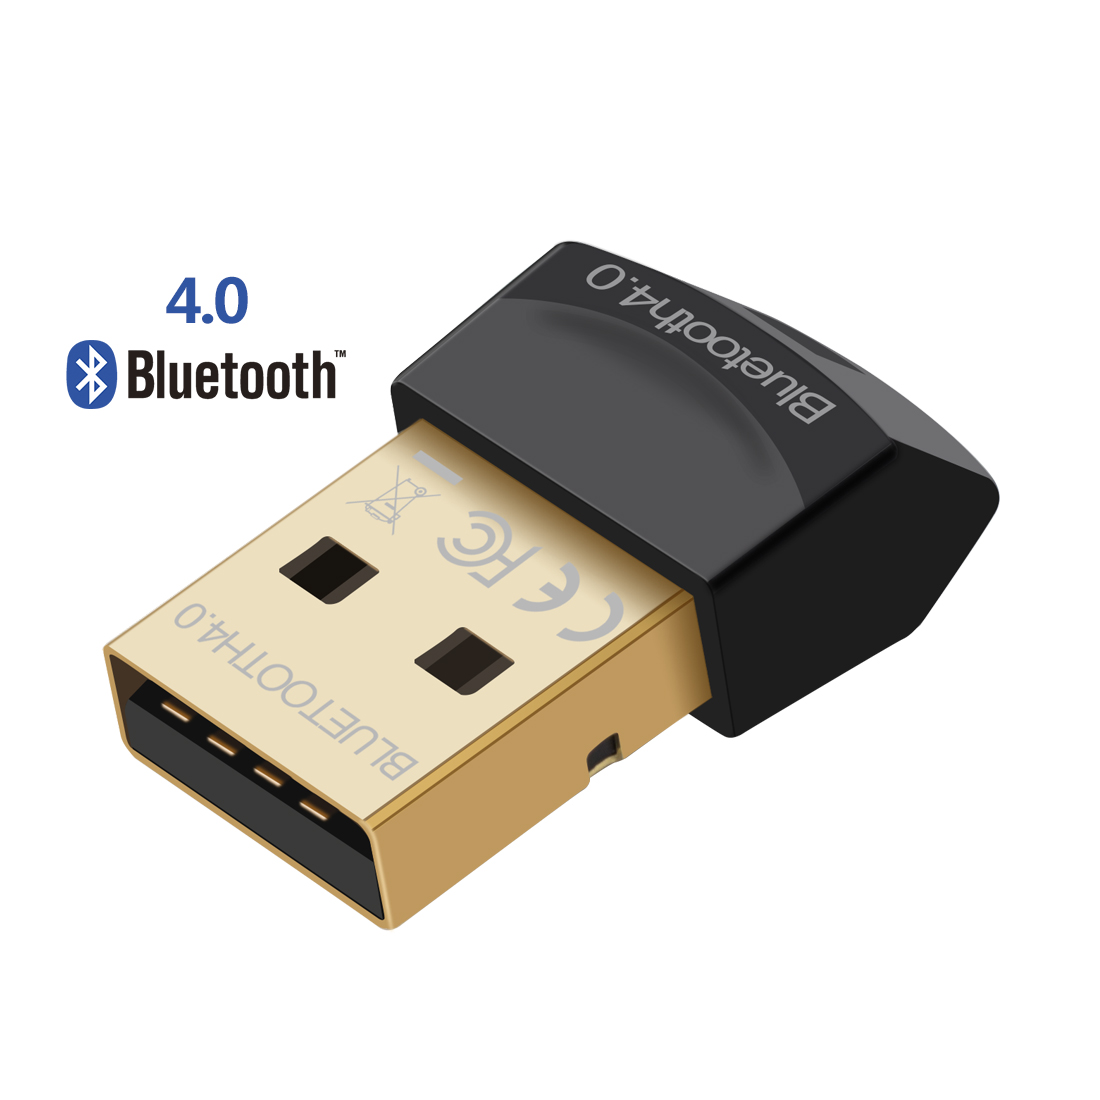 Mini USB Bluetooth Adapter V4.0 CSR Trådlös Bluetooth Dongle 4.0 Sändare för dator PC Laptop Windows 10 8 7 Vista XP